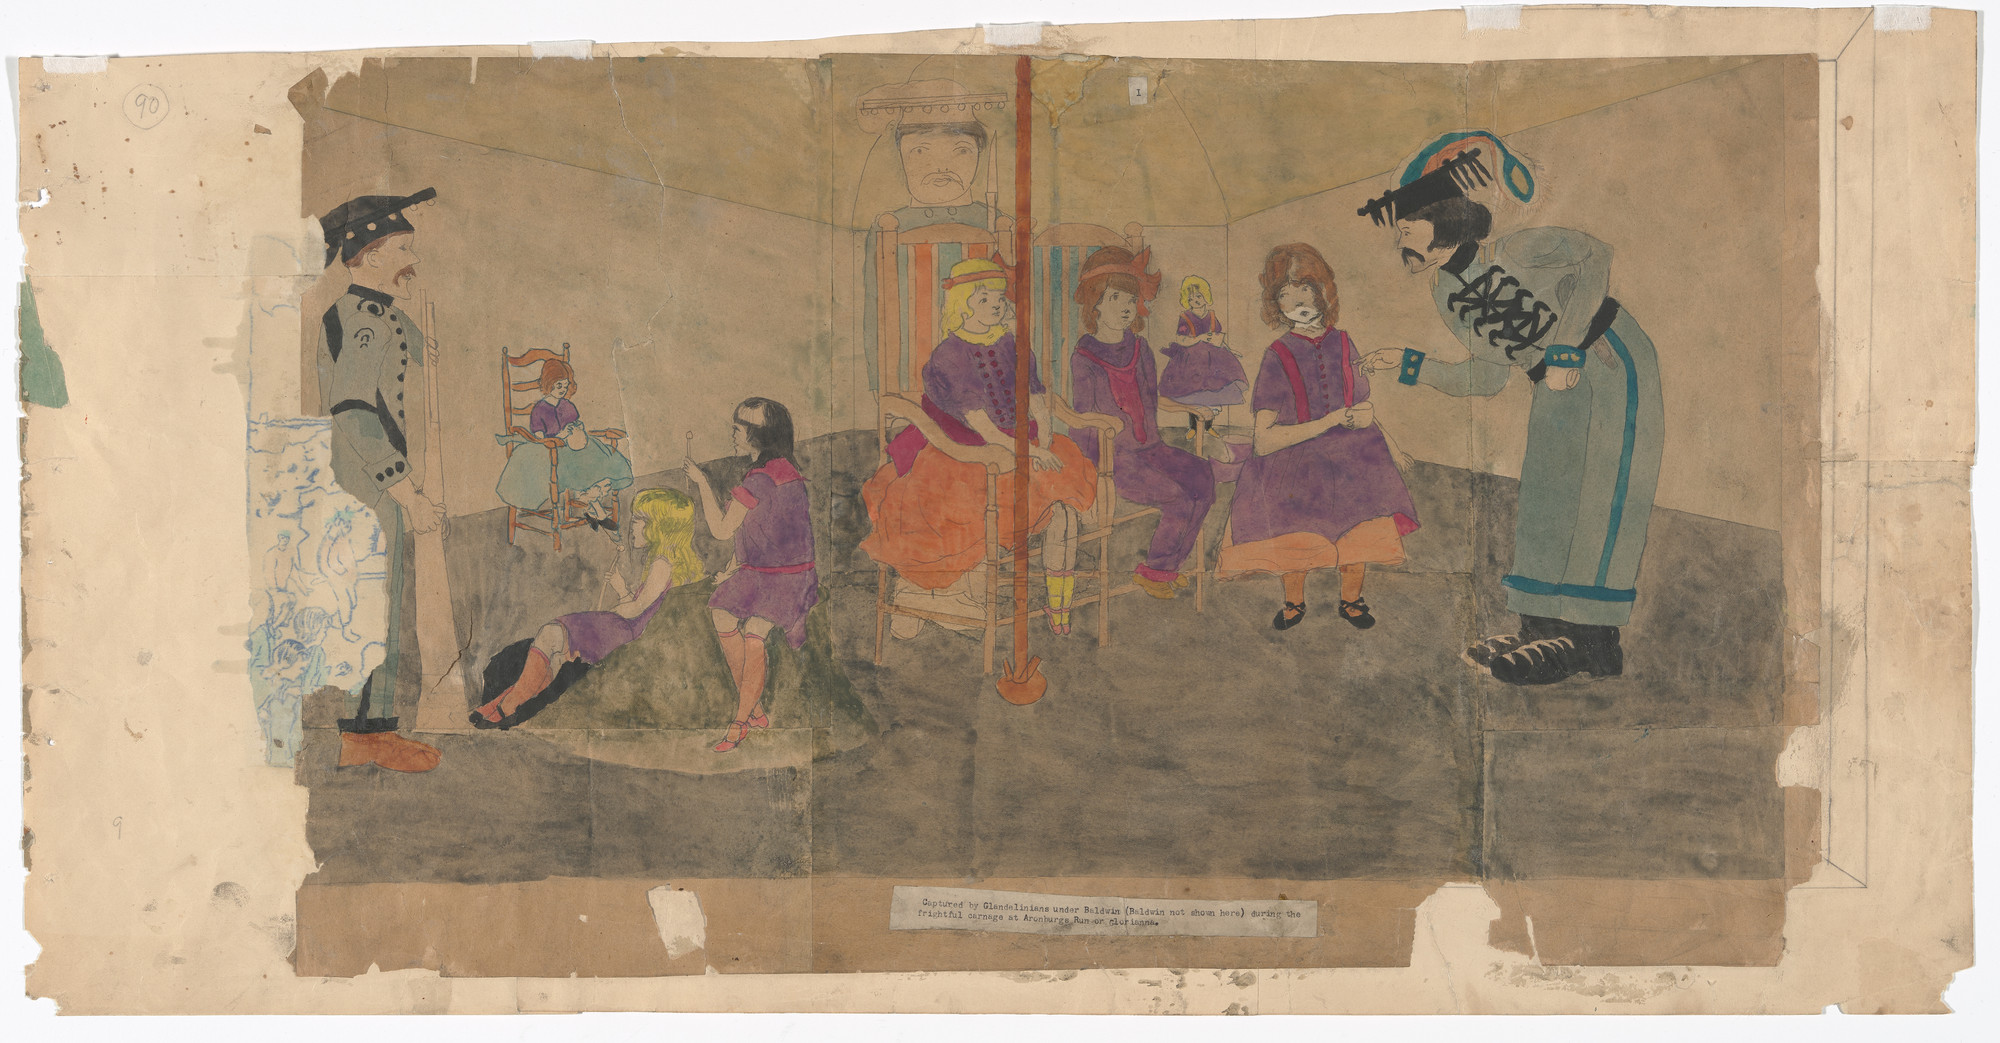 Henry Darger. a) Captured by Glandelinians under Baldwin (Baldwin not shown here) during the frightful carnage at Aronburgs Run or Glorianna  b) Picture No Two of the same scenes. (n.d.)